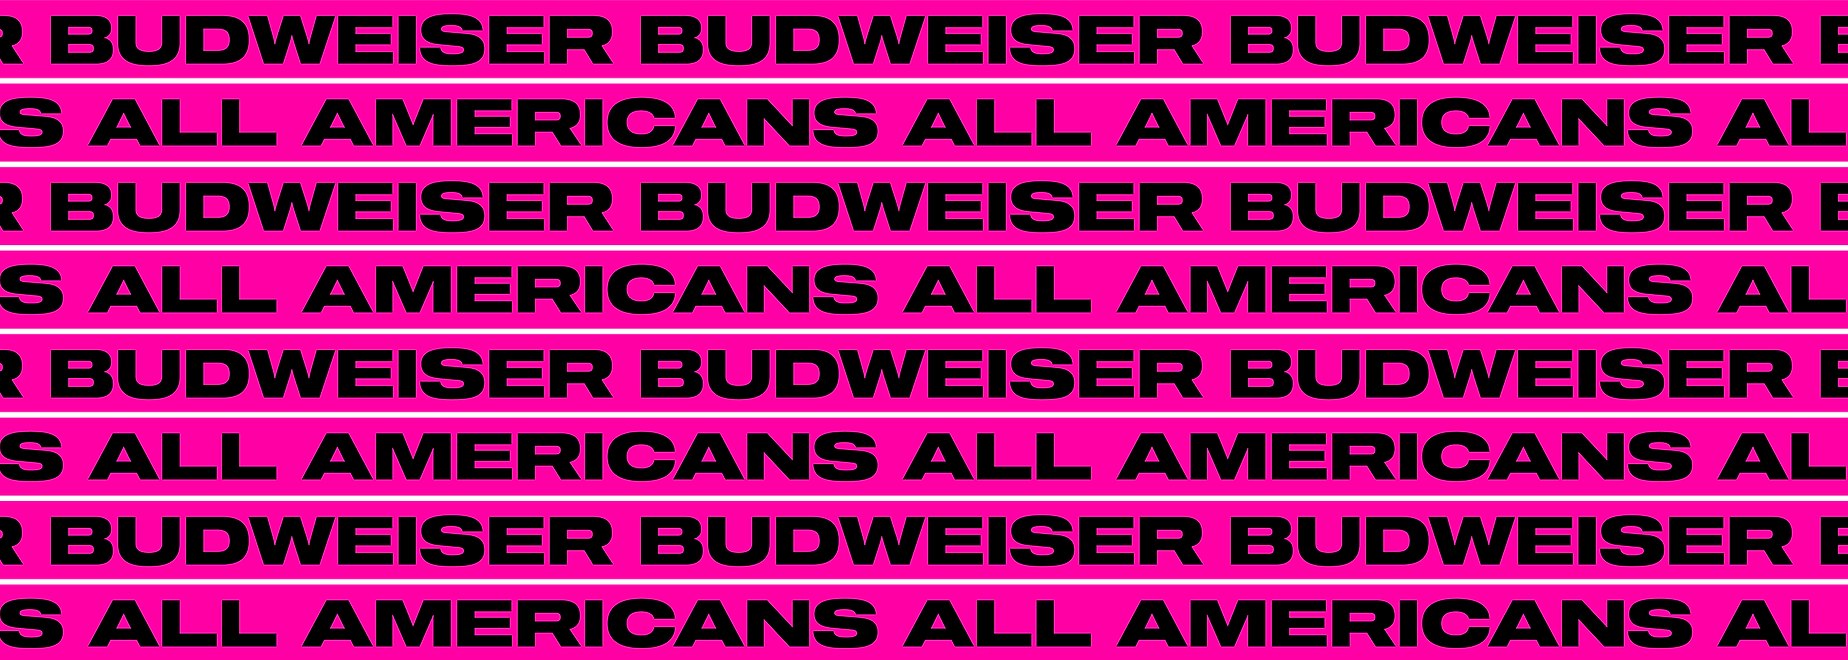 hover_budweiser.png